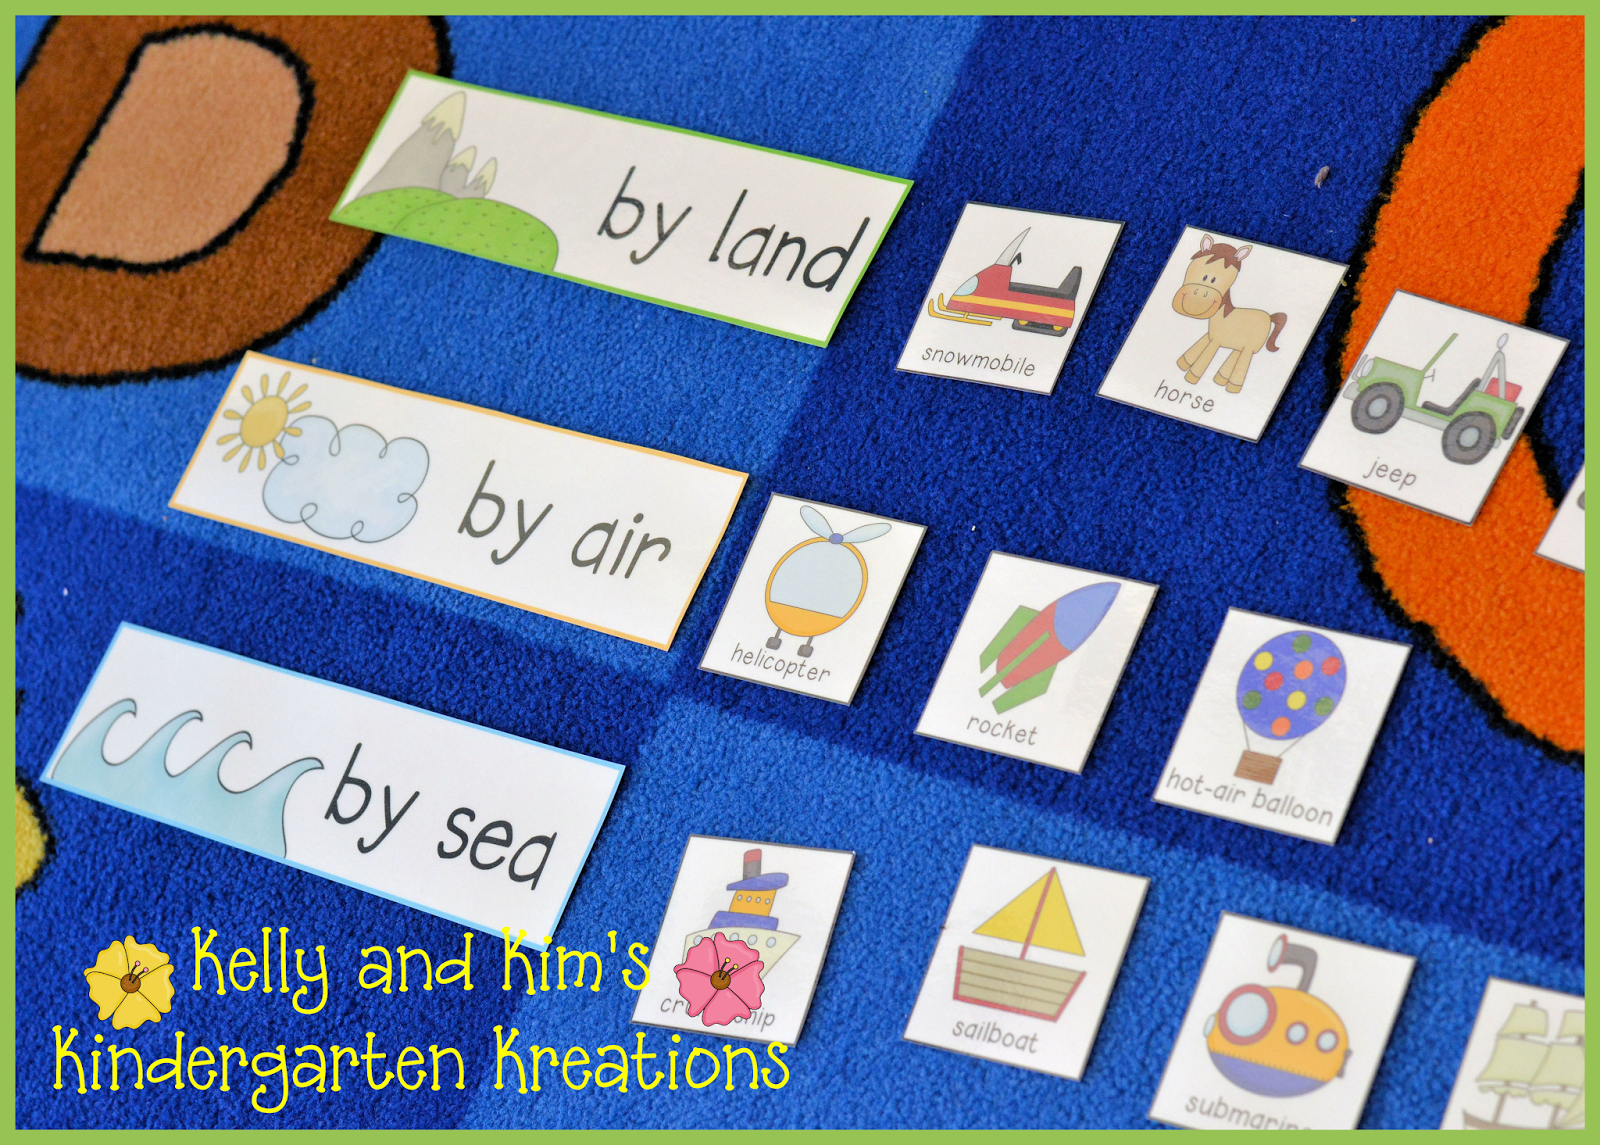 Kelly And Kim's Kindergarten Kreations: Vehicle Frenzy